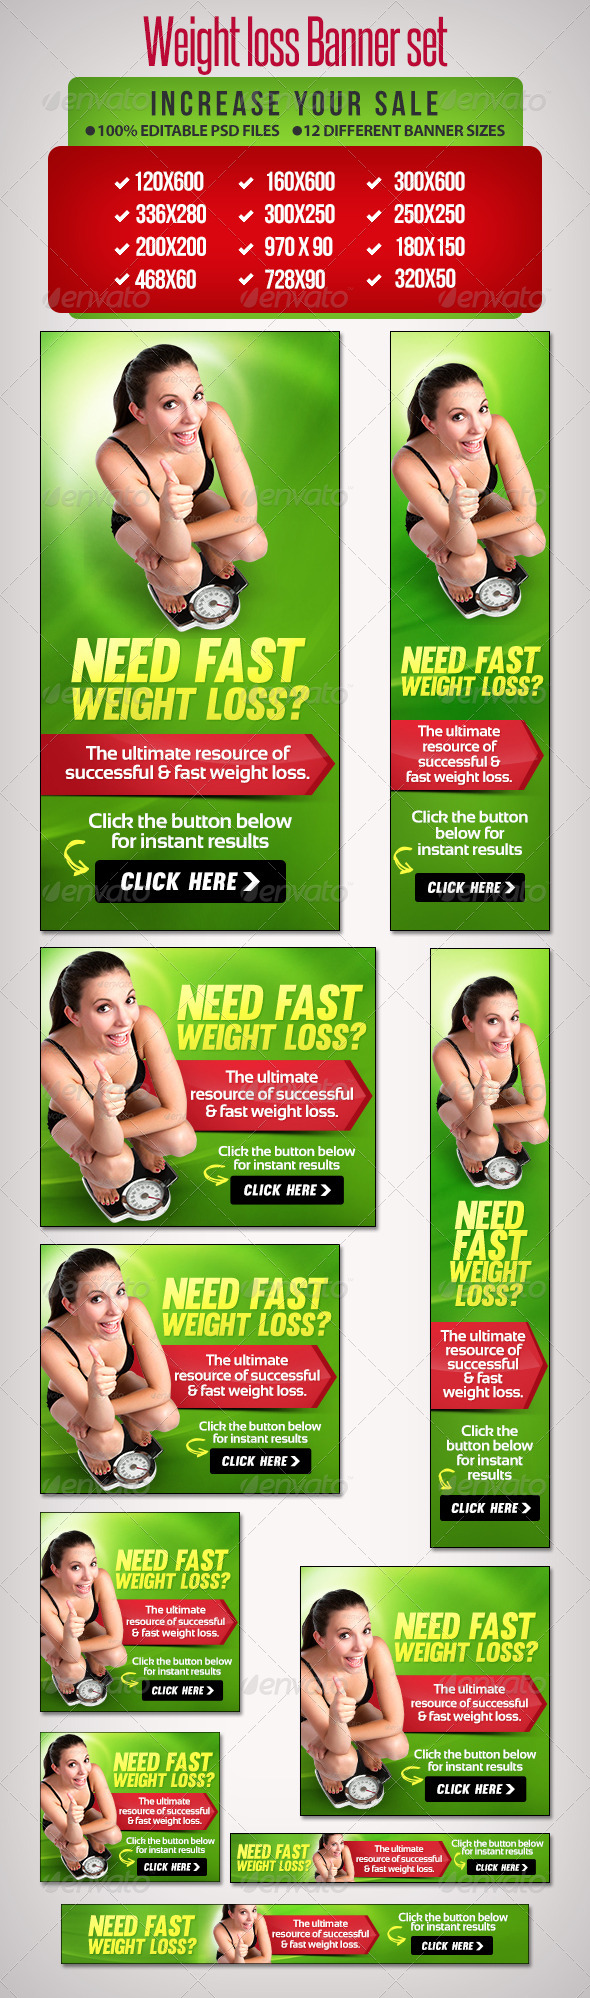 Weight Loss Banner Set 8 - Banners & Ads Web Elements